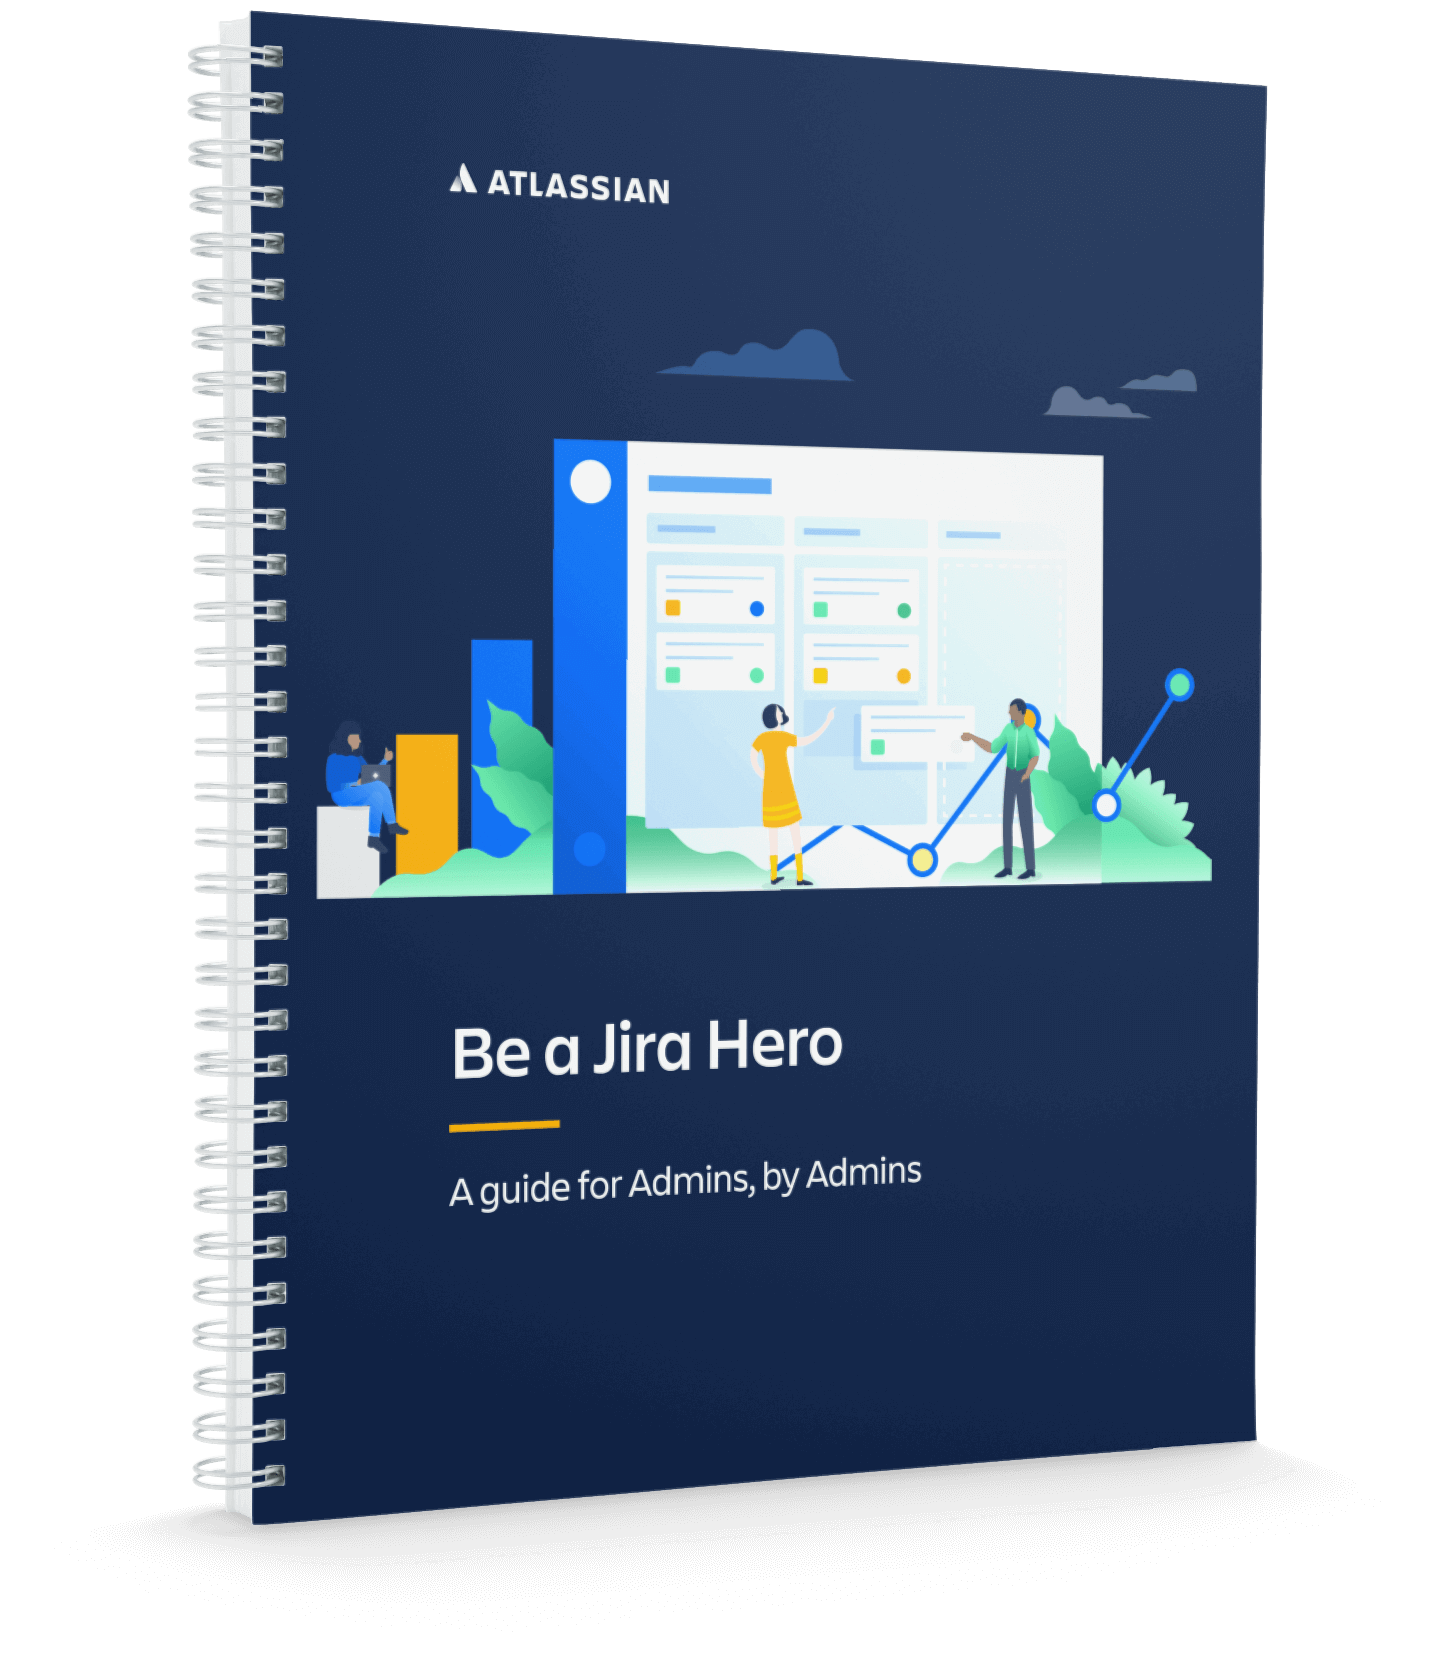 Be a Jira Hero